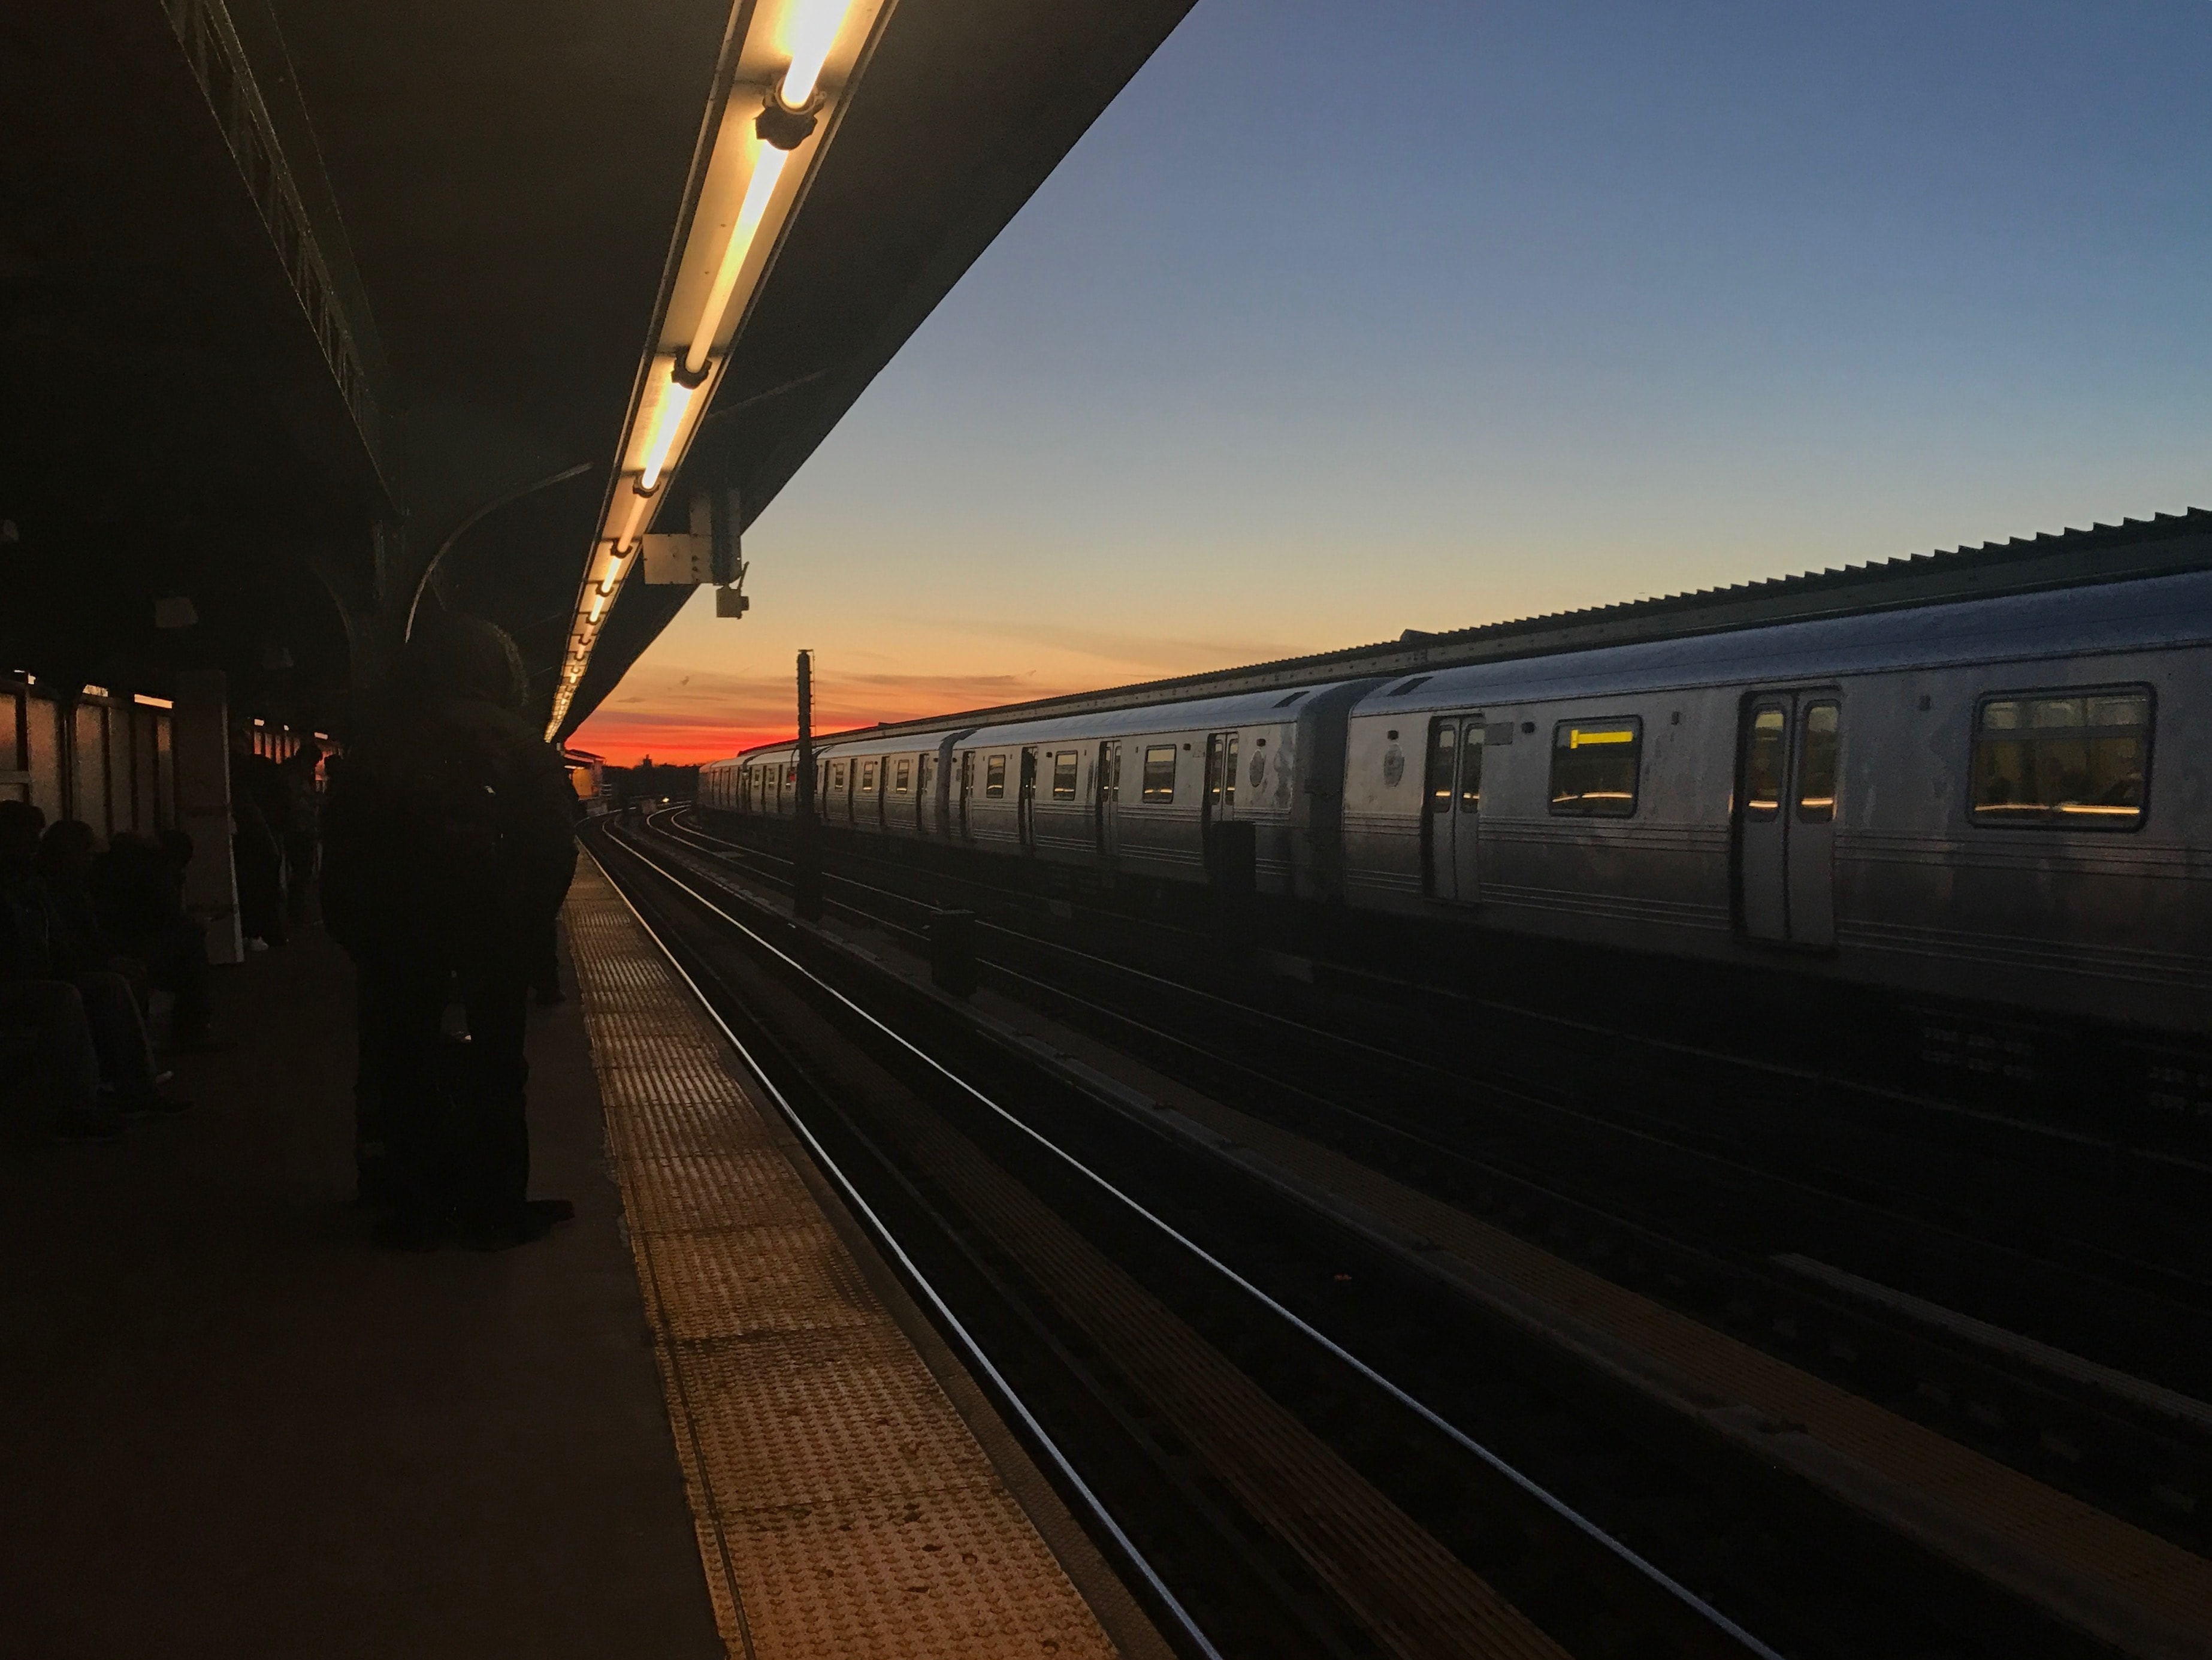 Sunset at Train at subway station in New York City